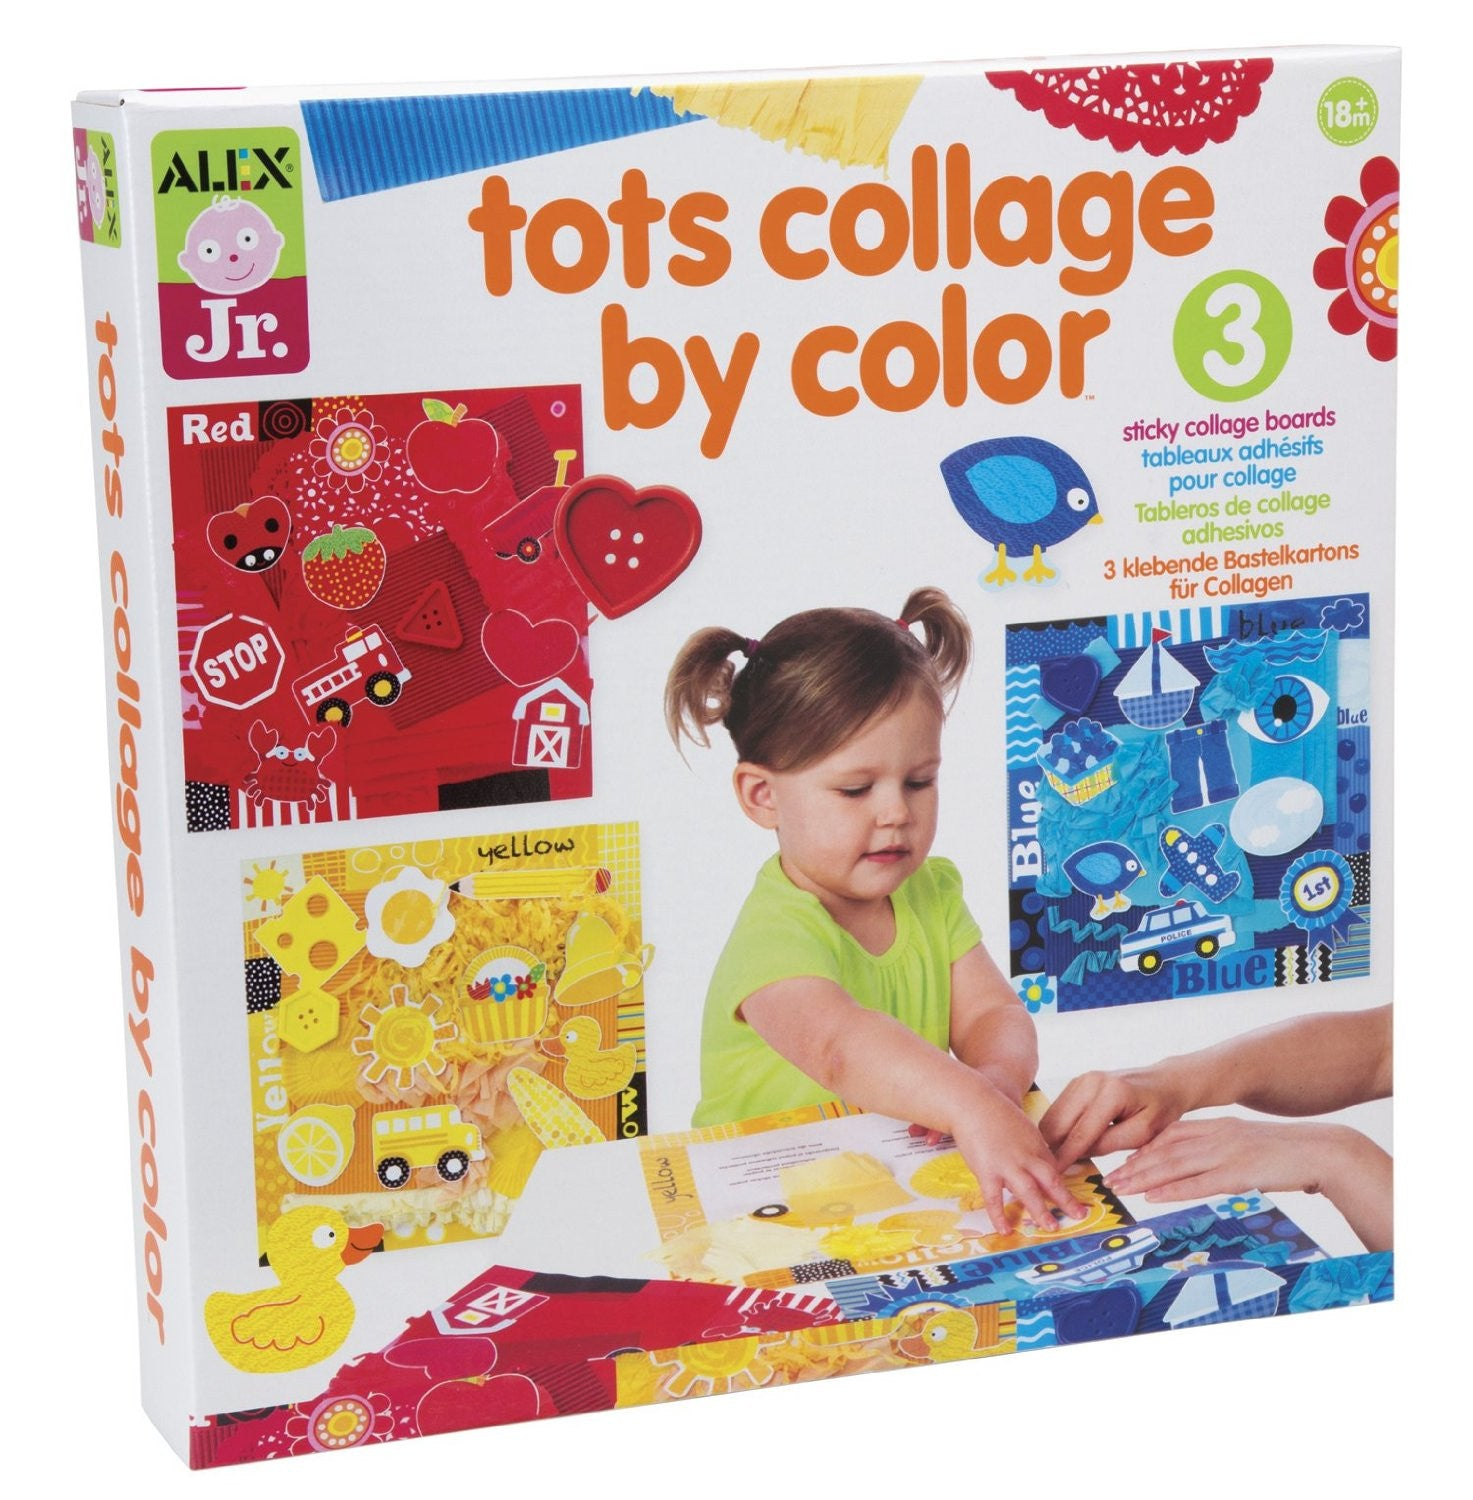 TOT COLLAGE BY COLOR